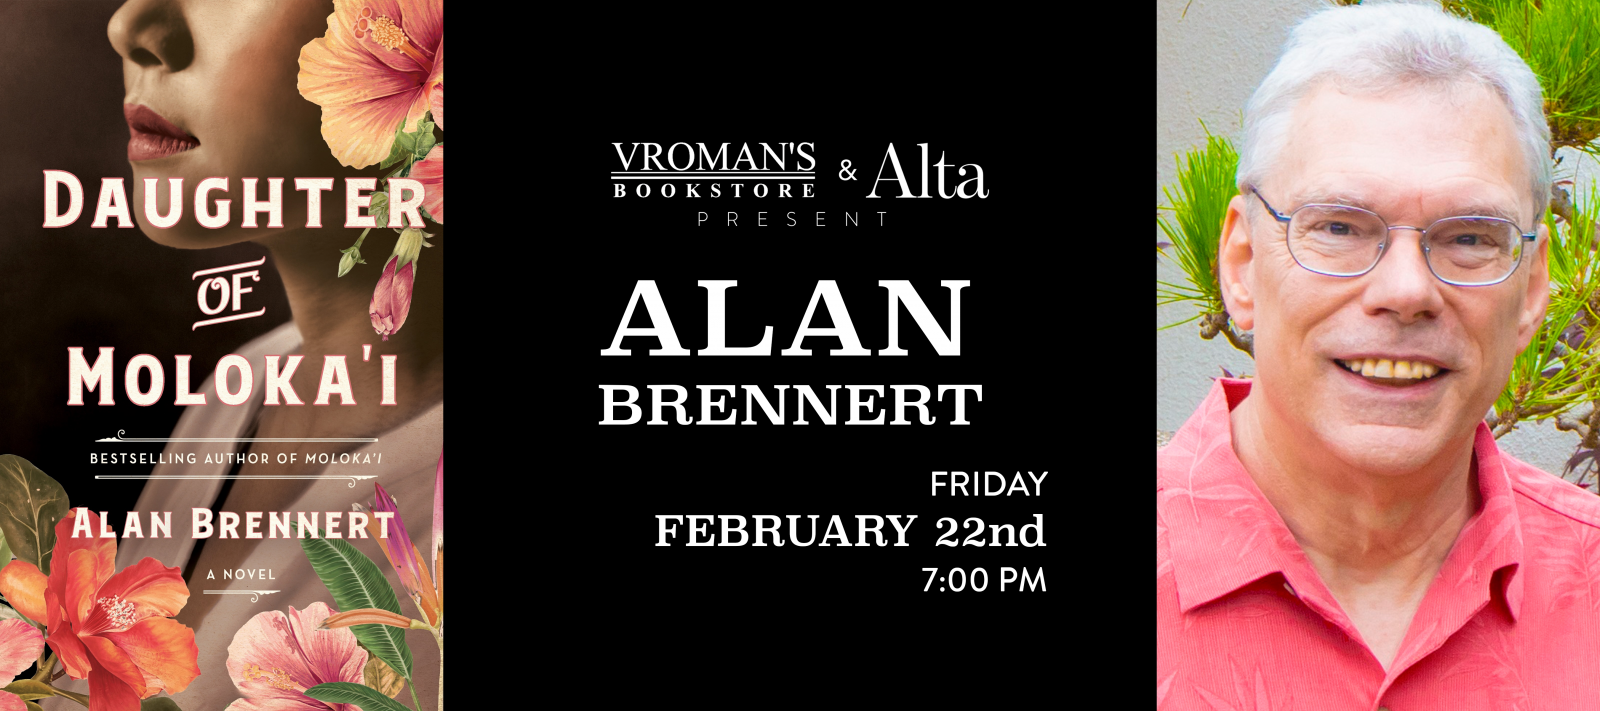 Alan Brennert Book Signing Friday February 22nd at 7pm